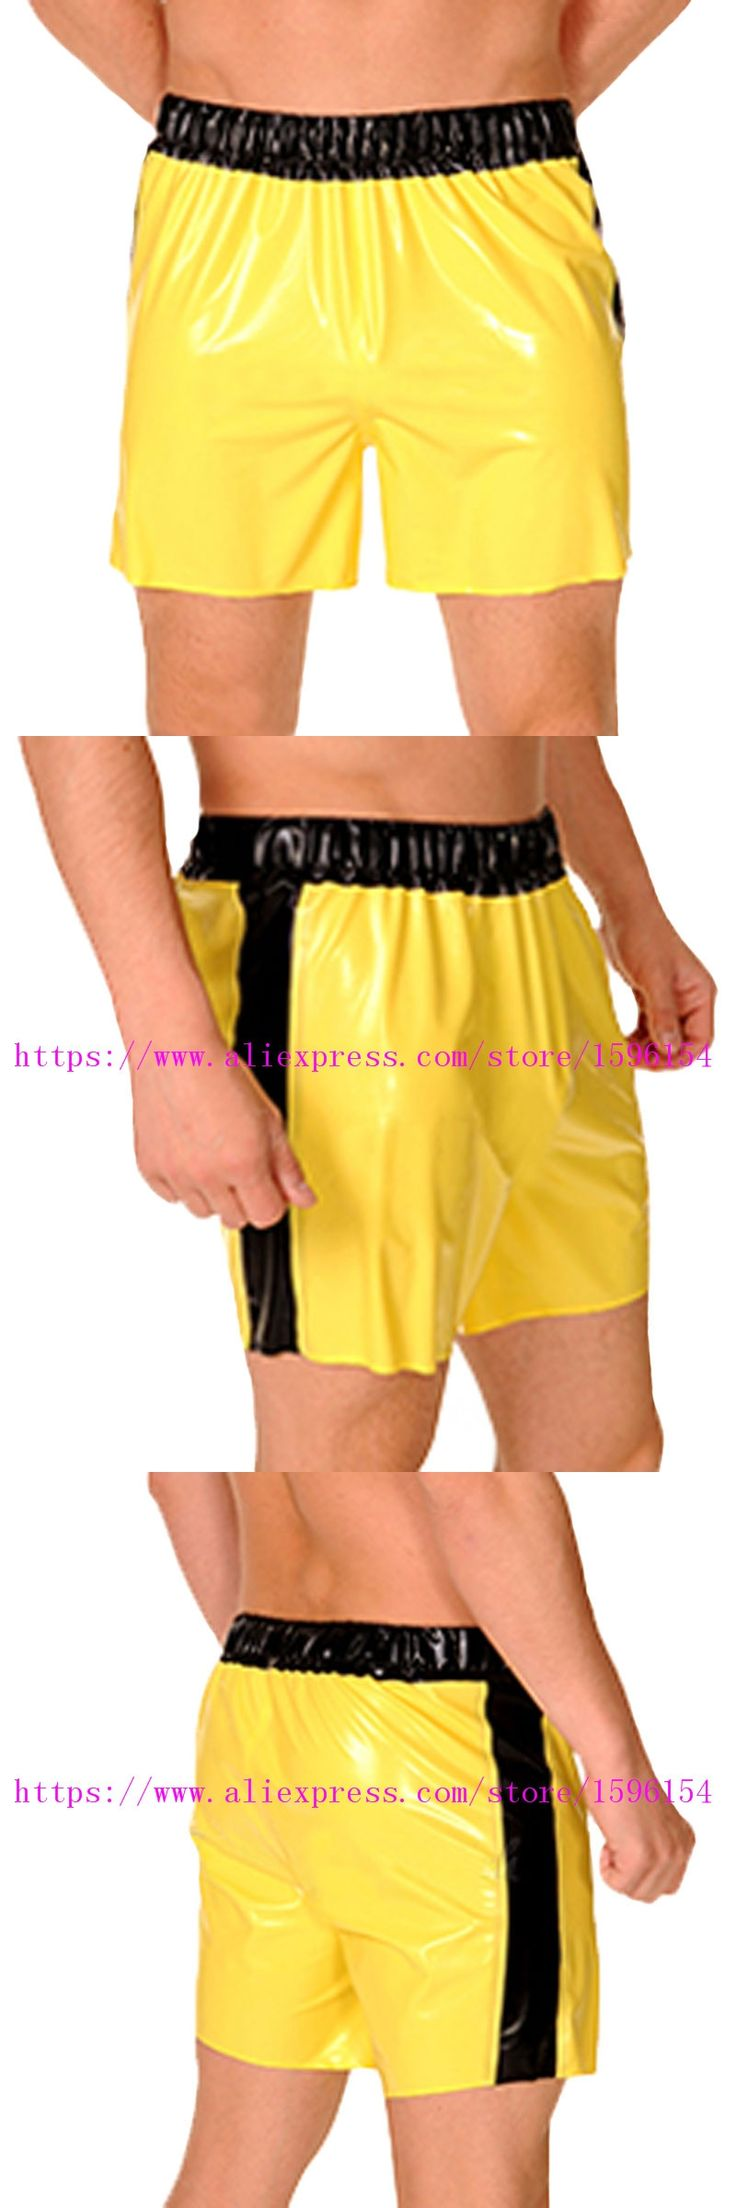 Sexy Latex Man Panties with Elastic Bands Stripes Short Boxer Short Rubber Hot Pants Bottom Panty LPM067